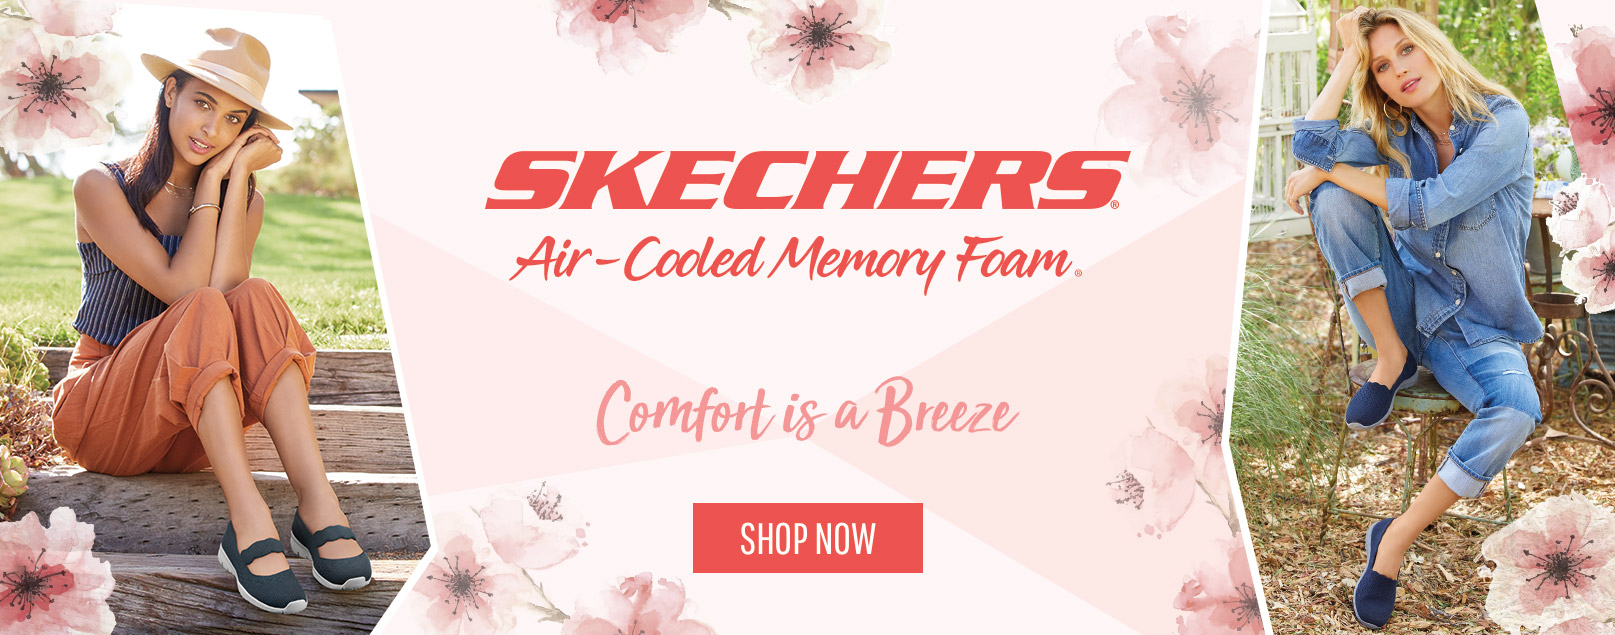 34313d2ffe57 Comfort is a breeze in hot weather with the SKECHERS Air Cooled Memory Foam  casual collection